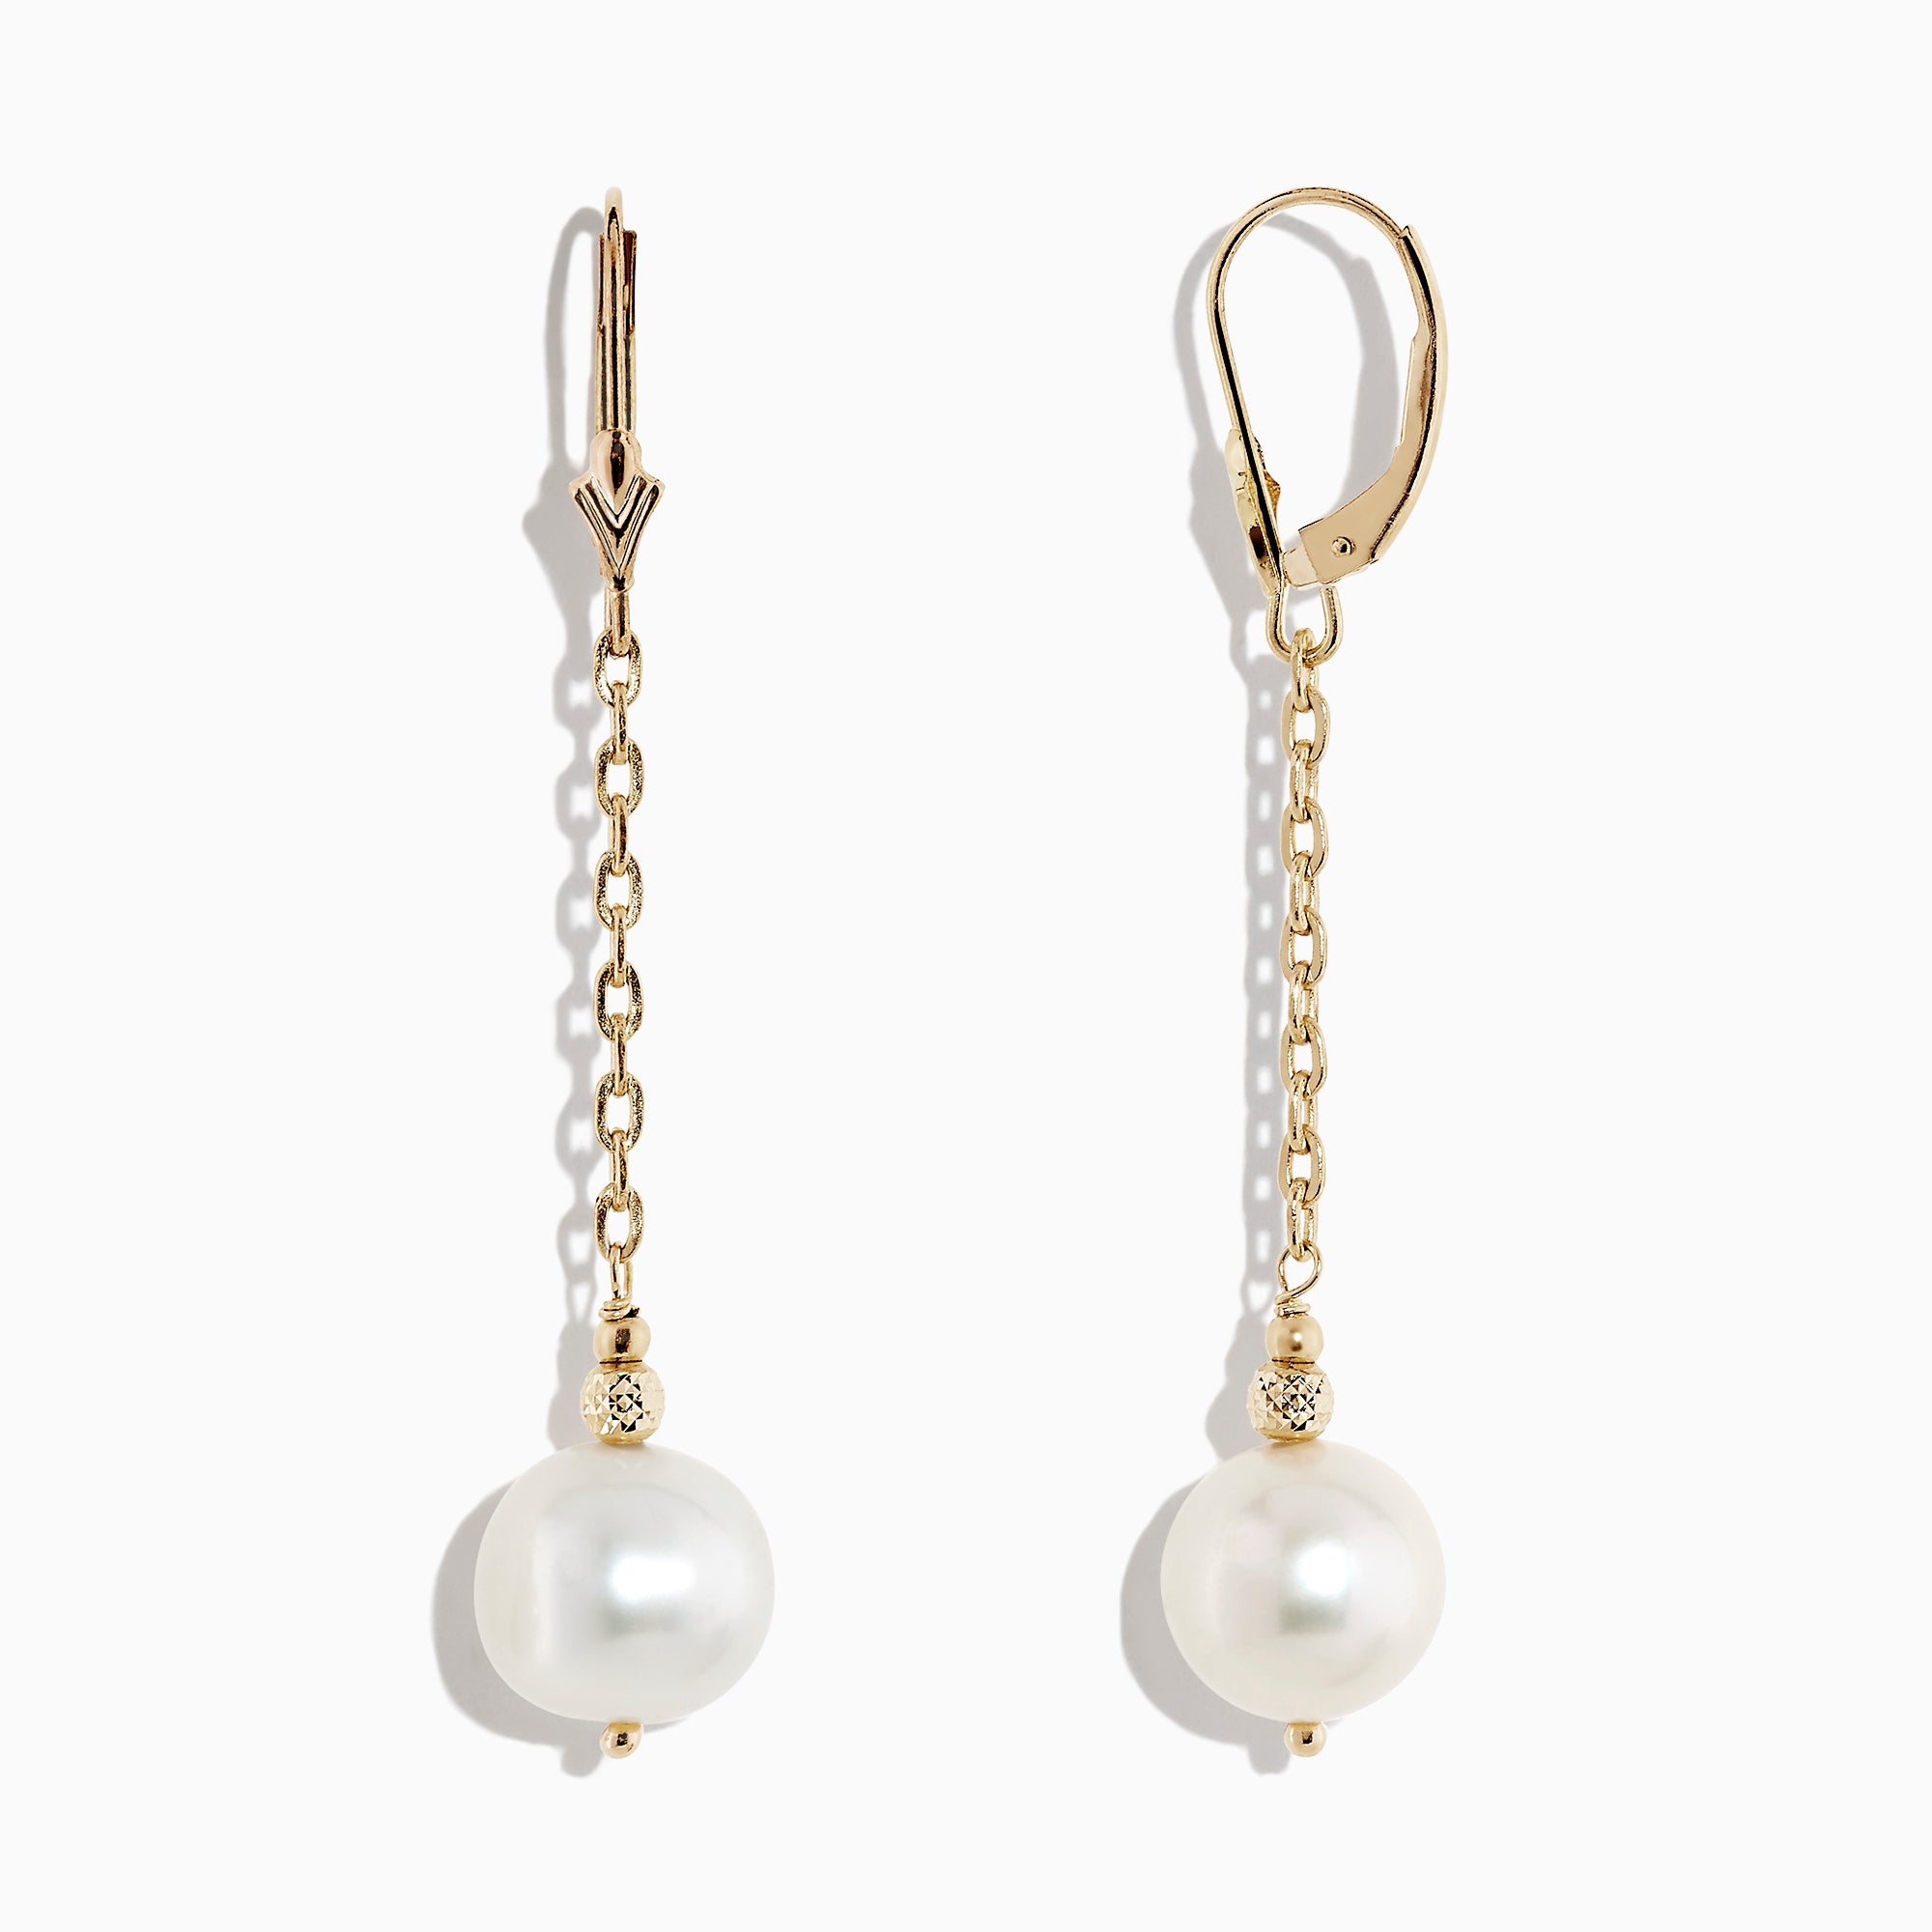 Effy 14K Yellow Gold Cultured Freshwater Pearl Earrings